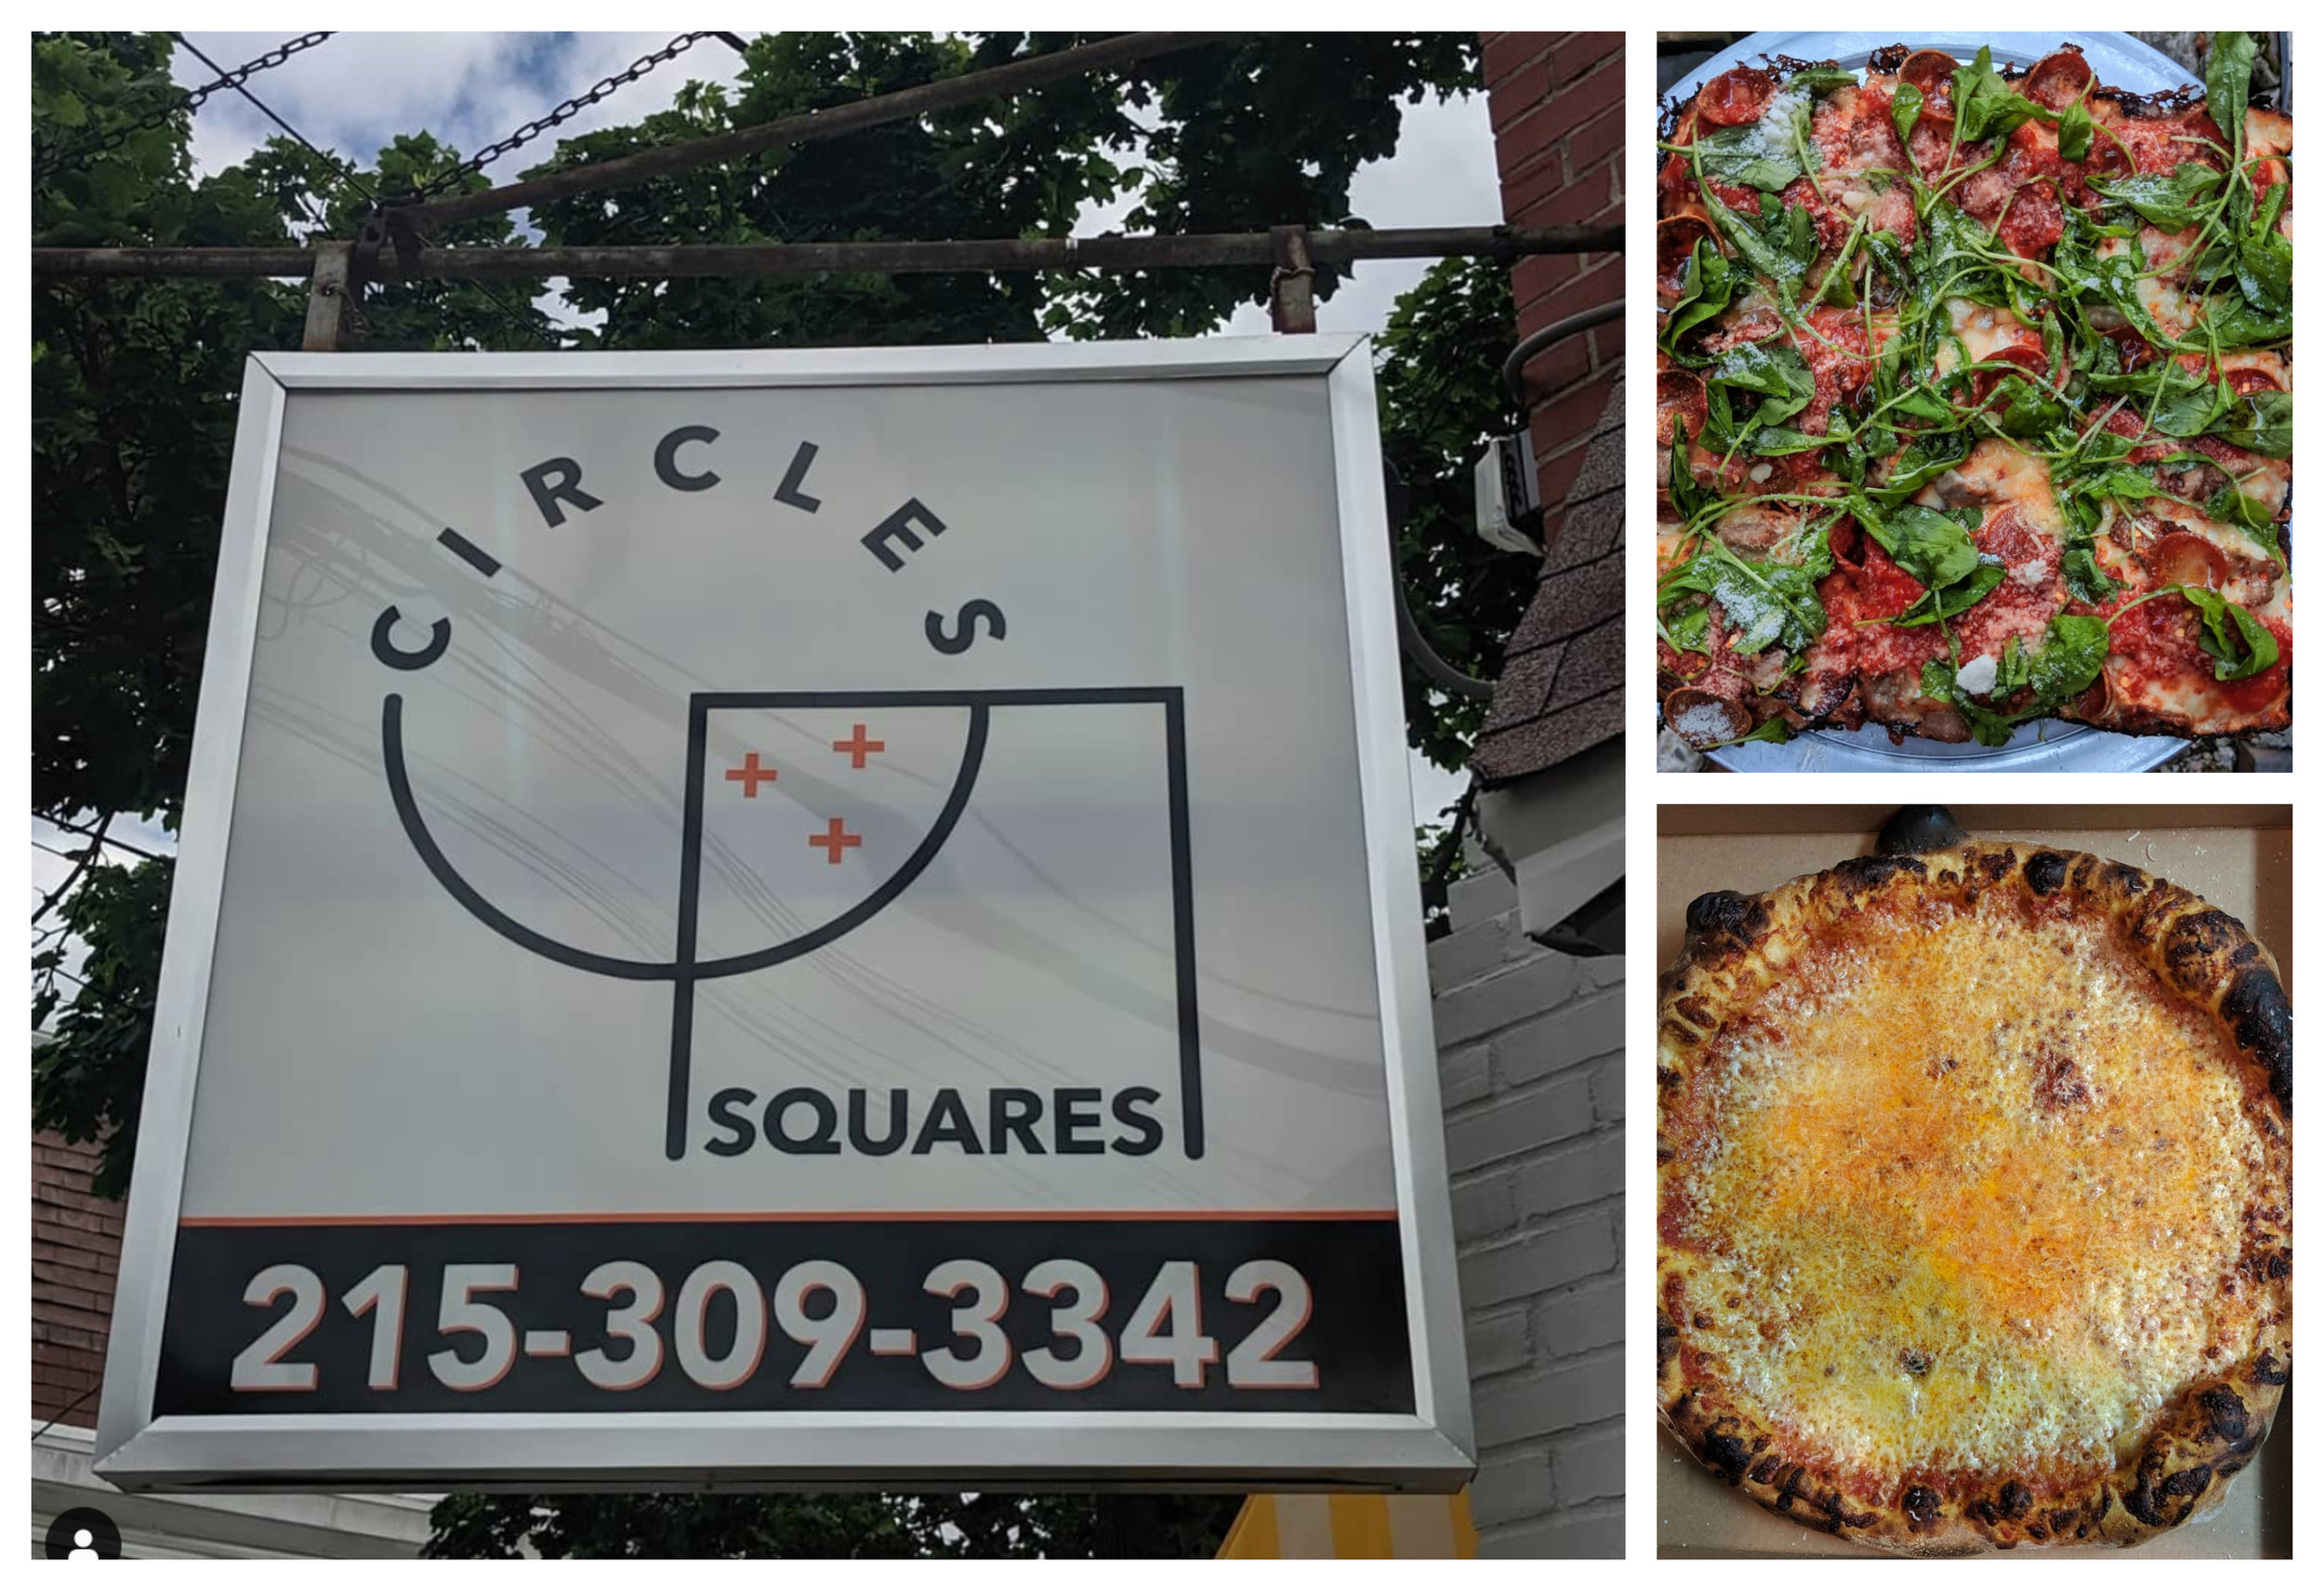 Images Via  @Pizza_Gutt  on Instagram (Circles+Squares Pizza)